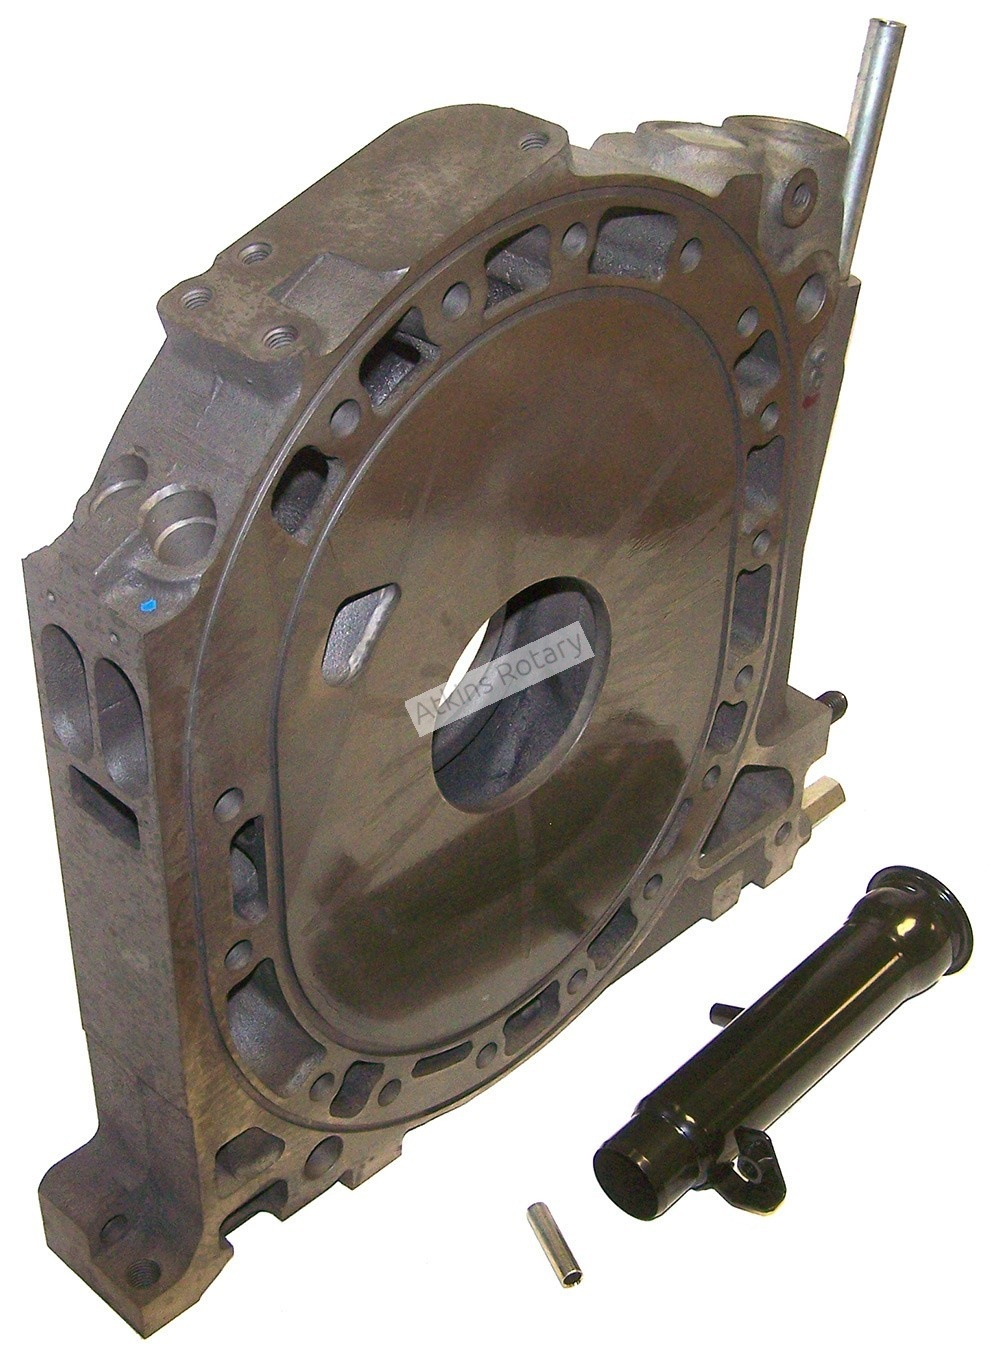 89-92 N/A Rx7 Center Side Housing (N350-10-D00C)